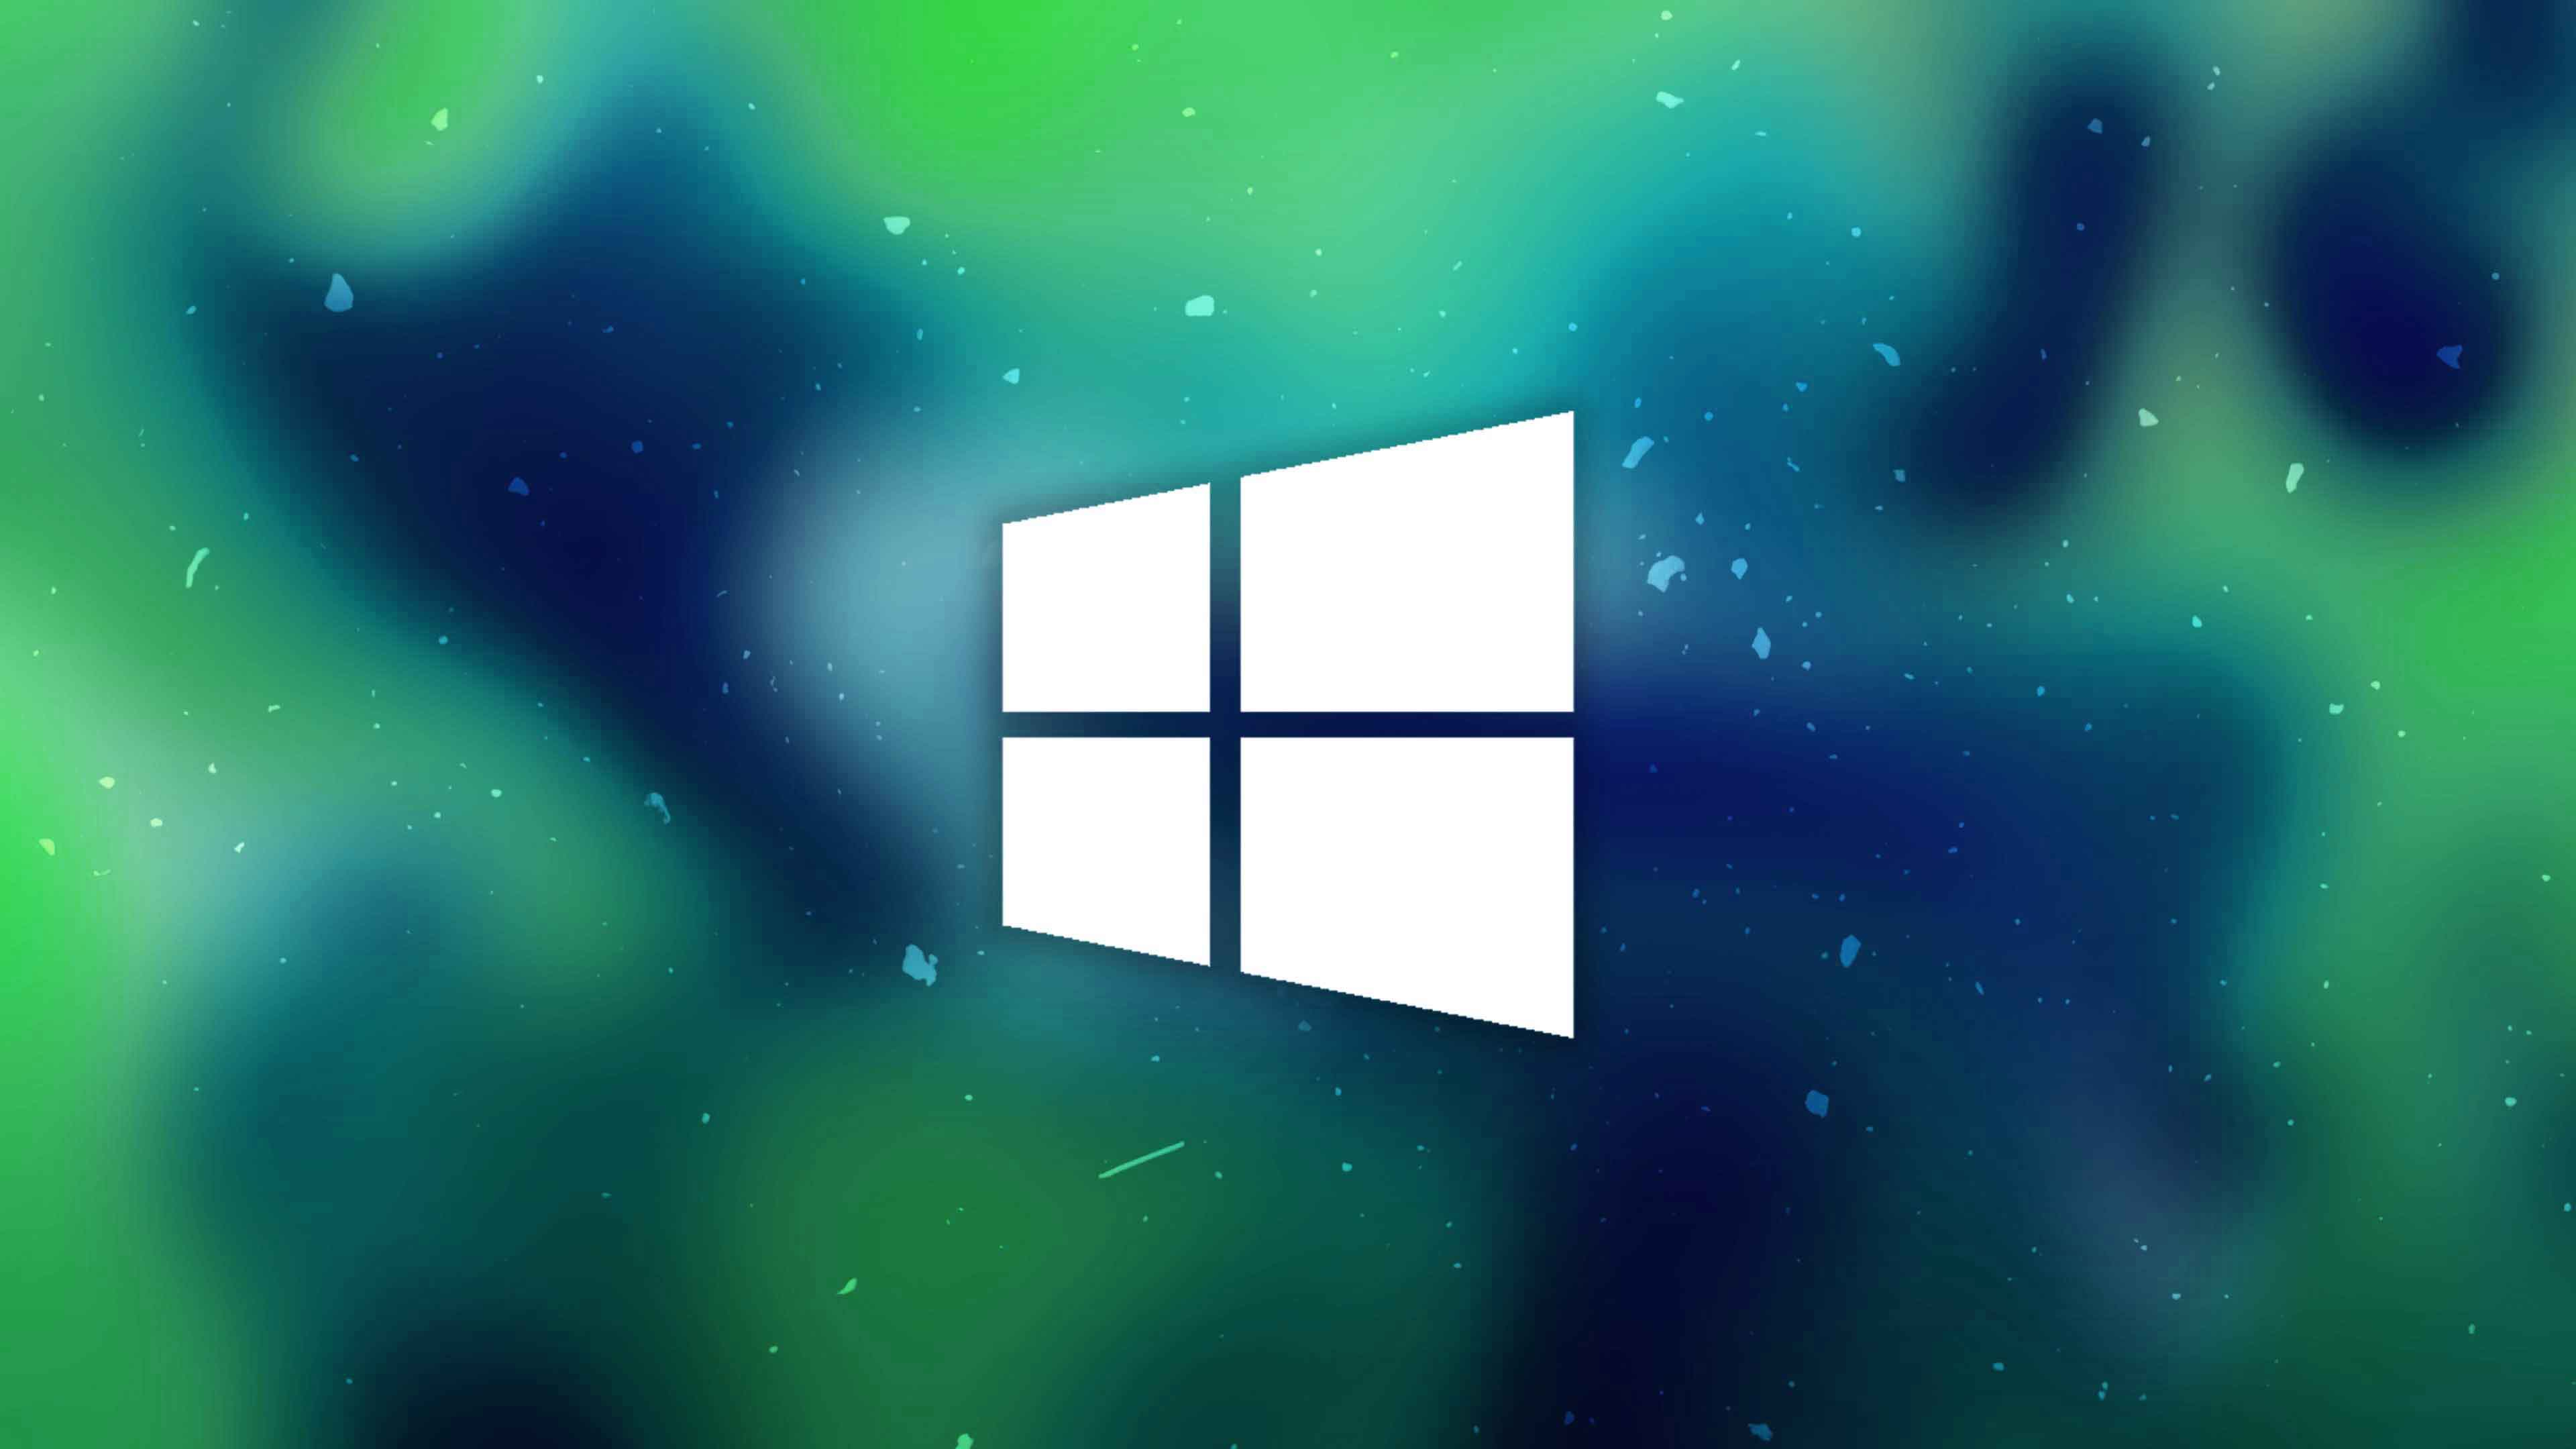 Windows 10 4k Wallpapers Hd Wallpaper For Pc 3840x2160 Download Hd Wallpaper Wallpapertip